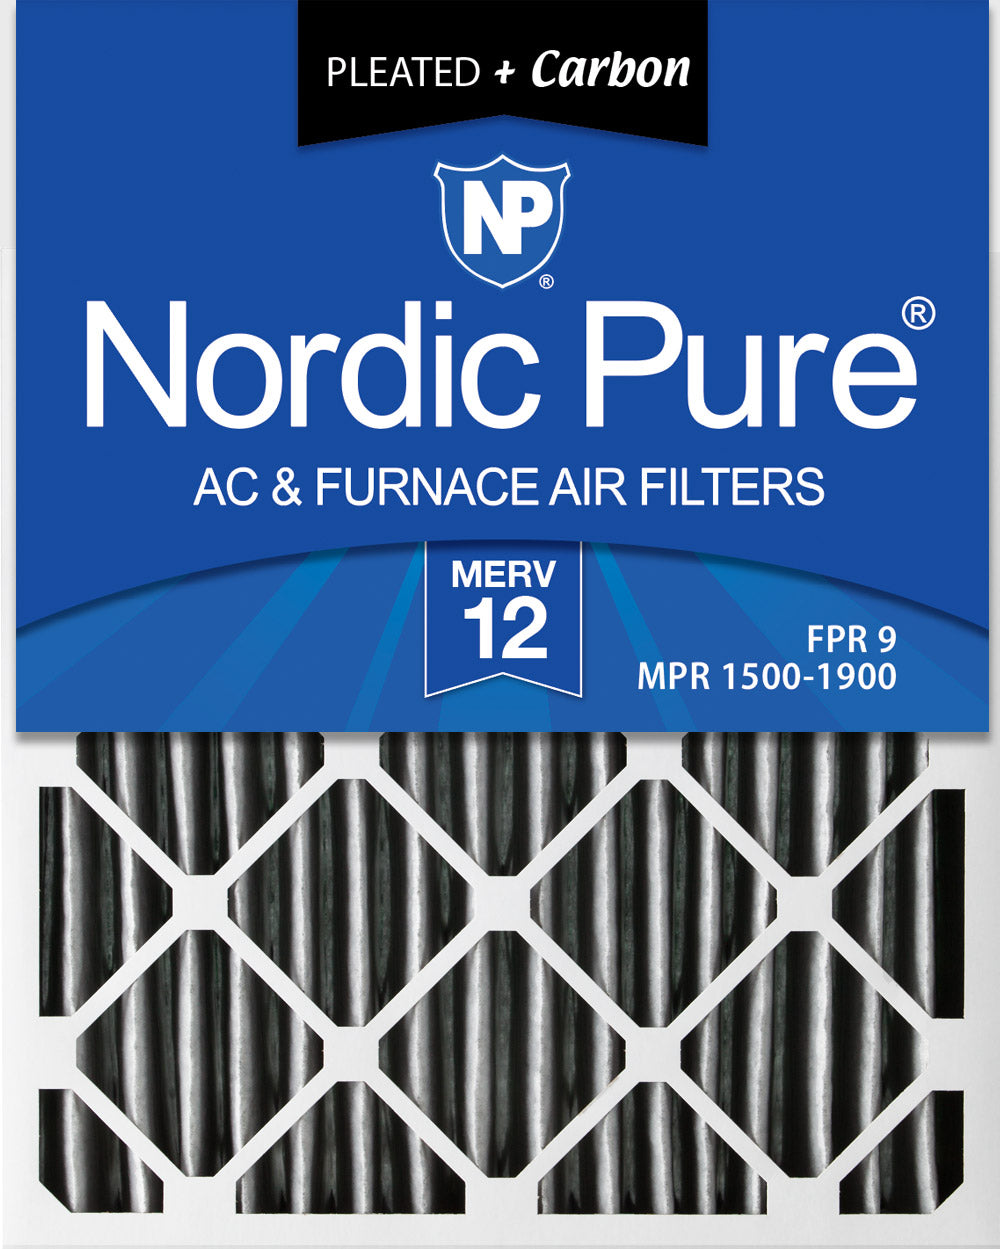 14x20x2 Furnace Air Filters MERV 12 Pleated Plus Carbon 3 Pack